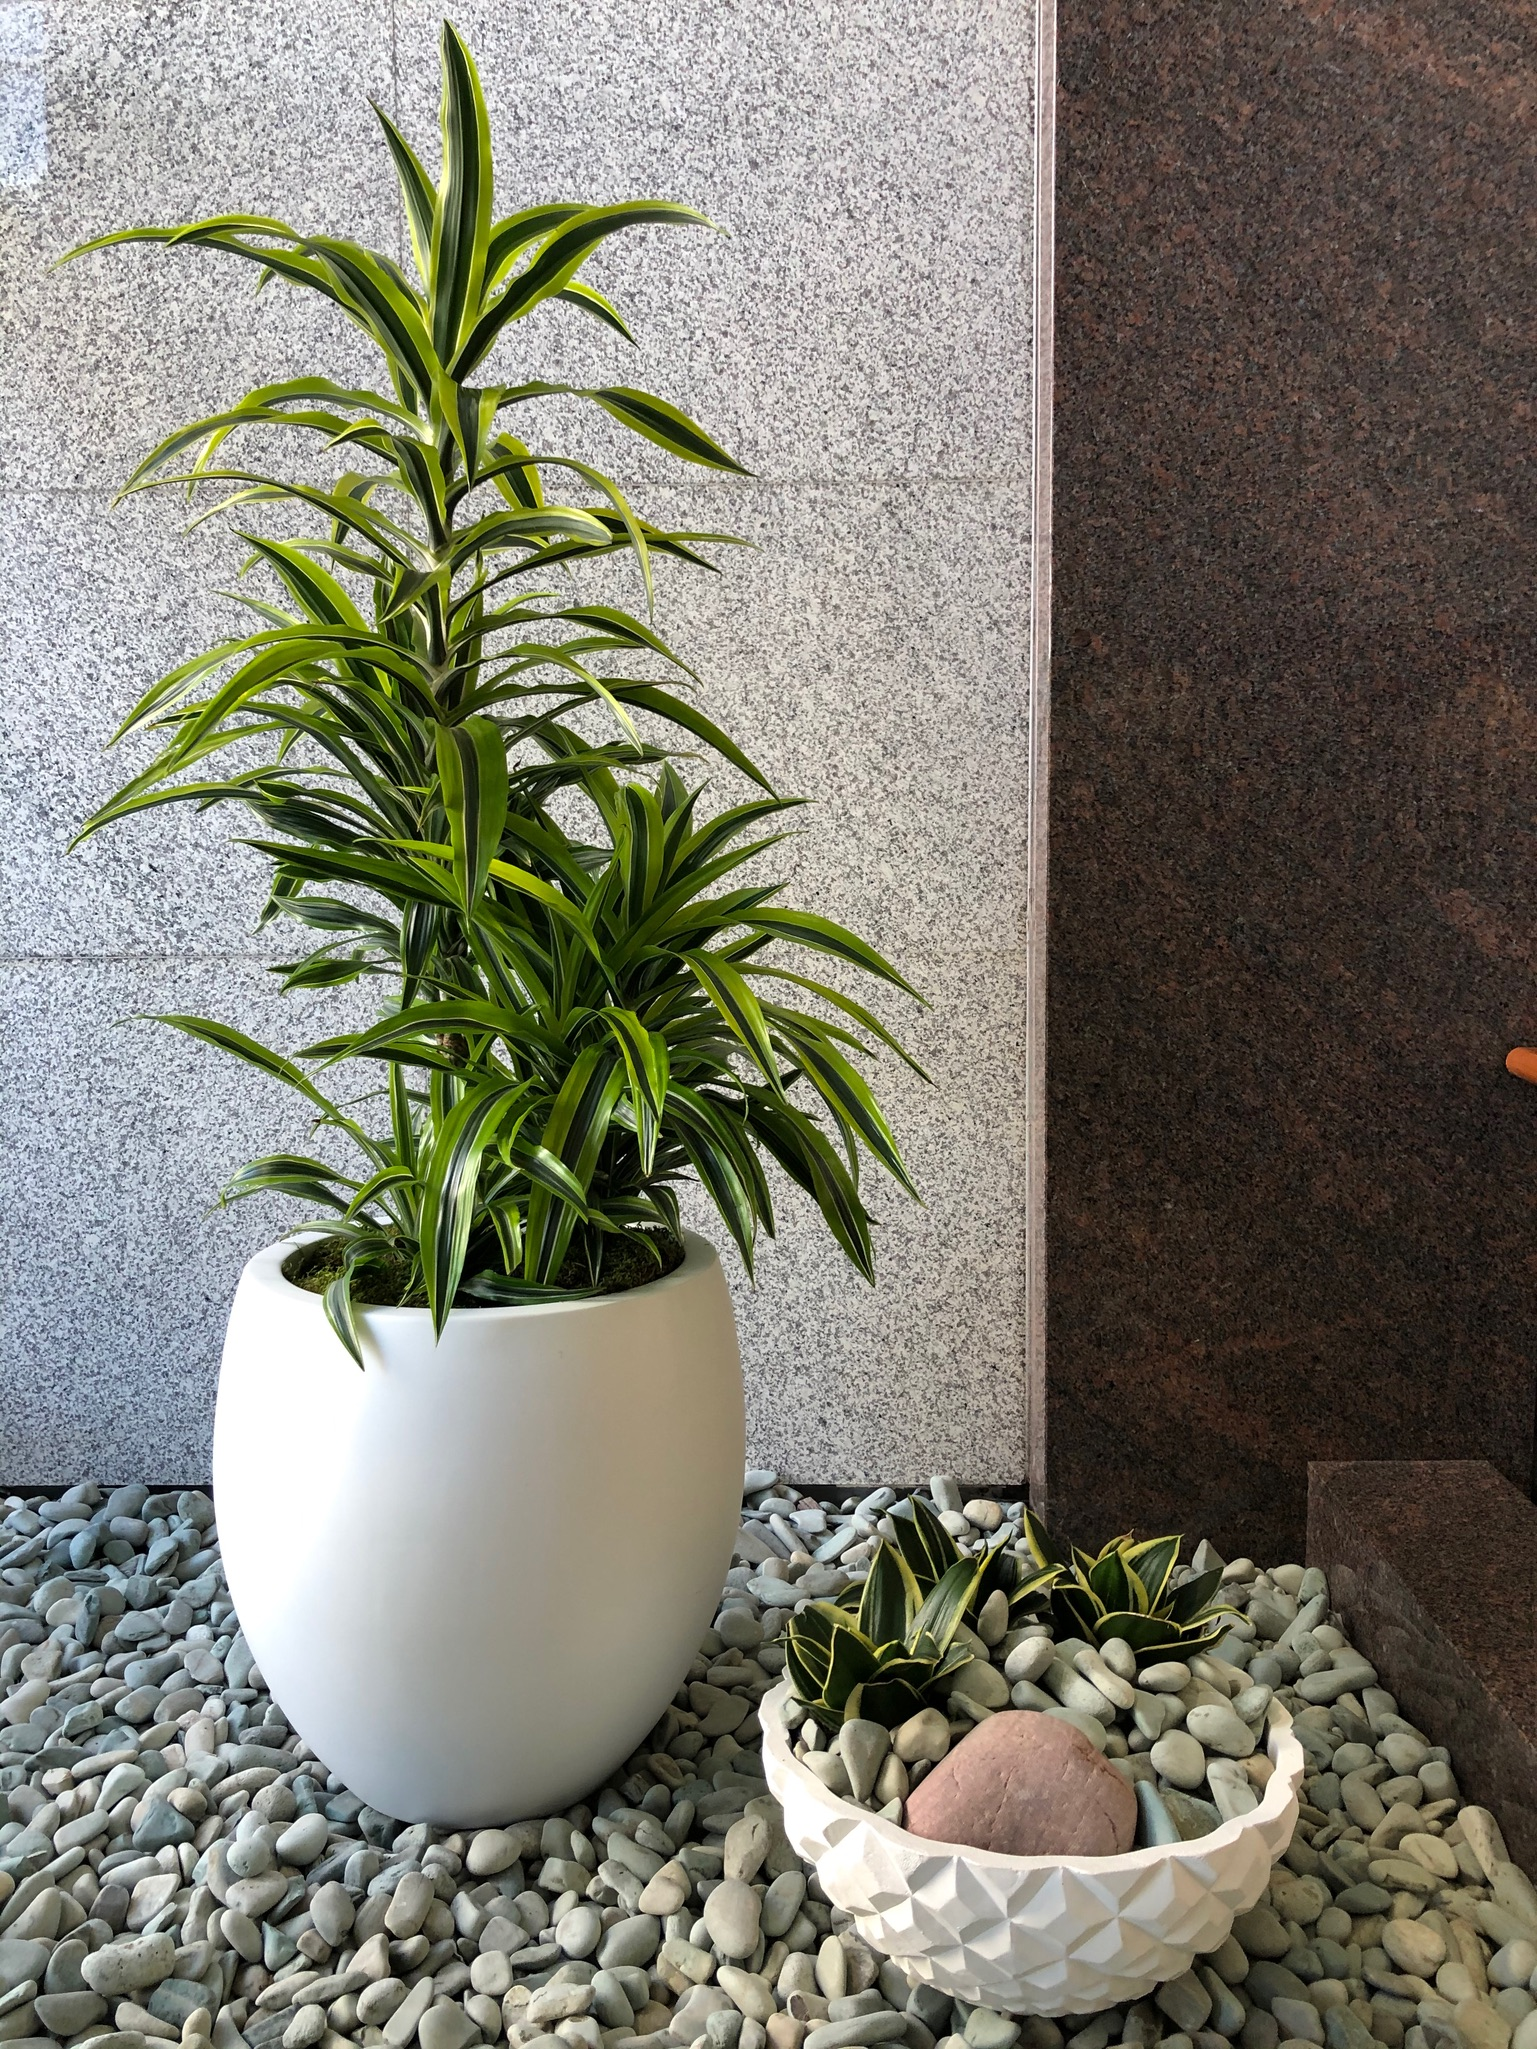 Dracaena Lemon Lime and Asian Beach Pebble